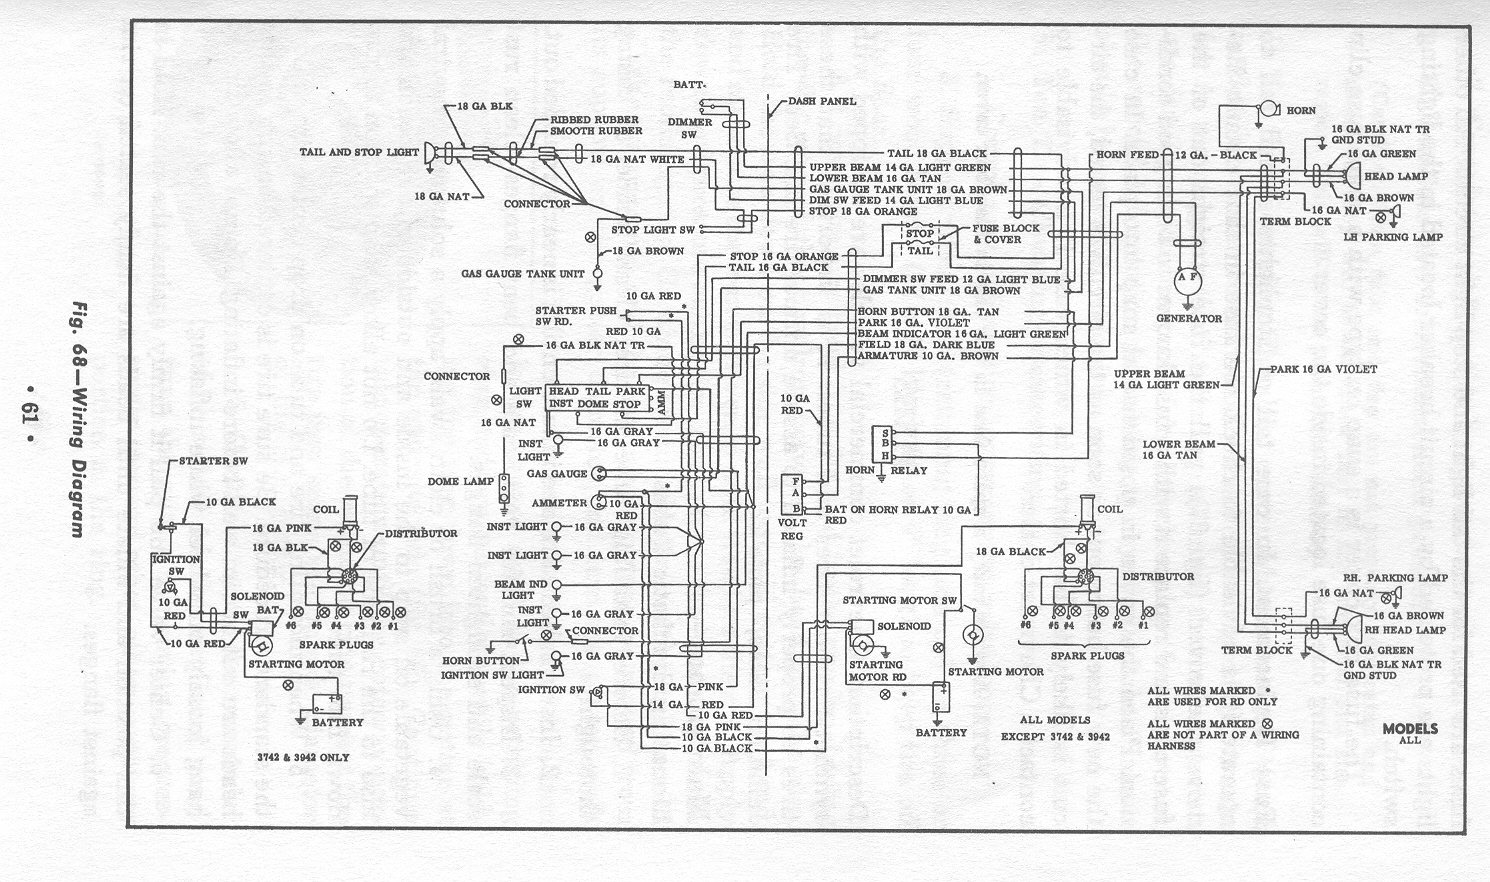 C10 Engine Diagram Wiring Library Complete For 1954 Chevrolet Truck 83 Chevy Get Free Image About Stereo